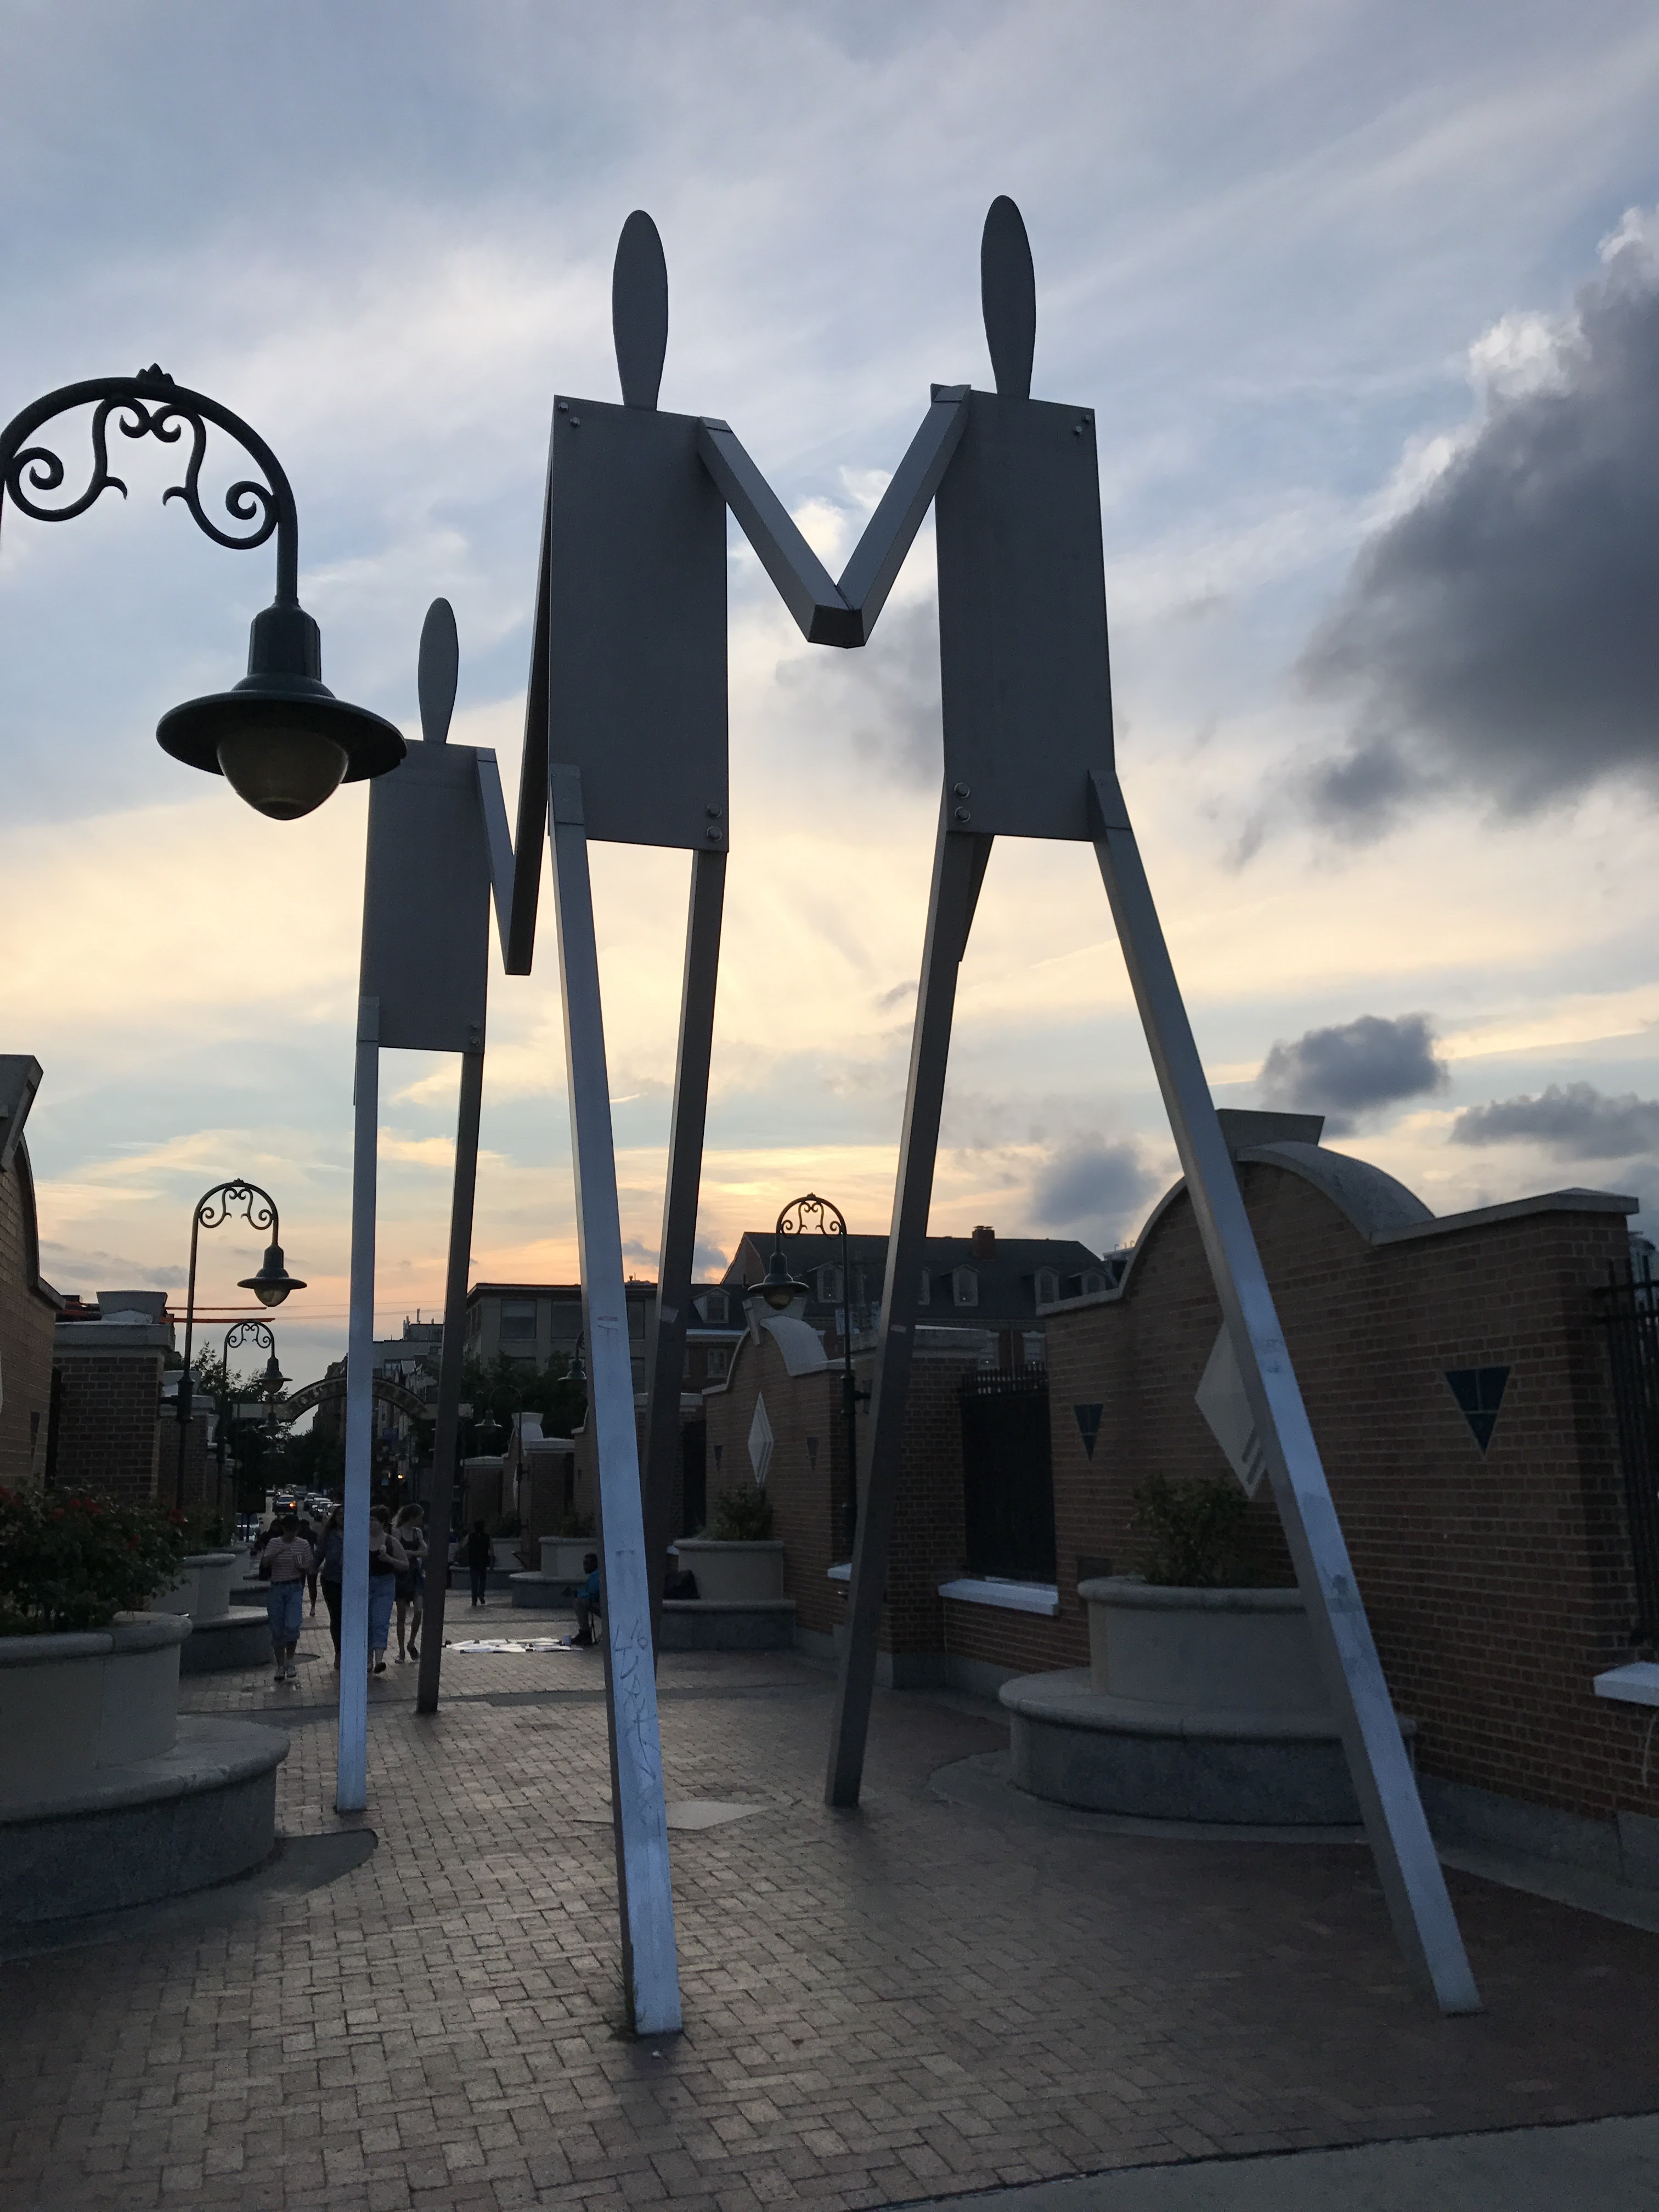 Public art installation of human-esque figures walking, taken at sunset.